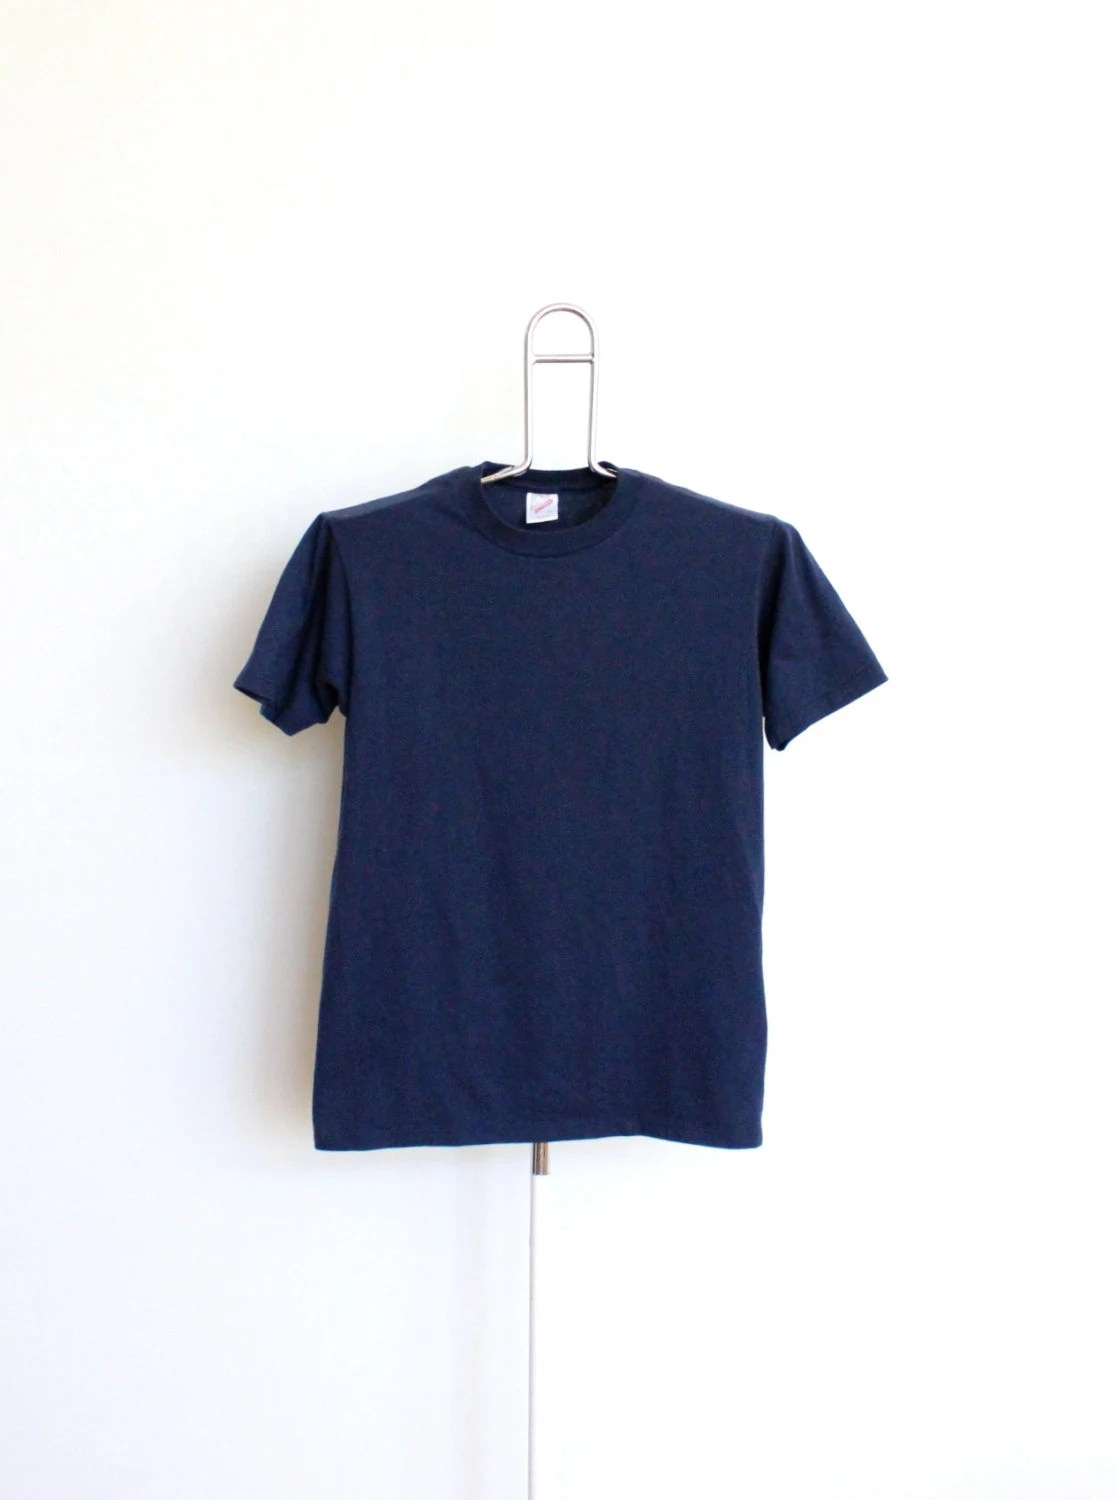 Soft Navy Blue Plain Jerzees T Shirt Mens Small / Medium Unisex Womens 80s 50 50 Made In USA Vintage - beachwolfvintage